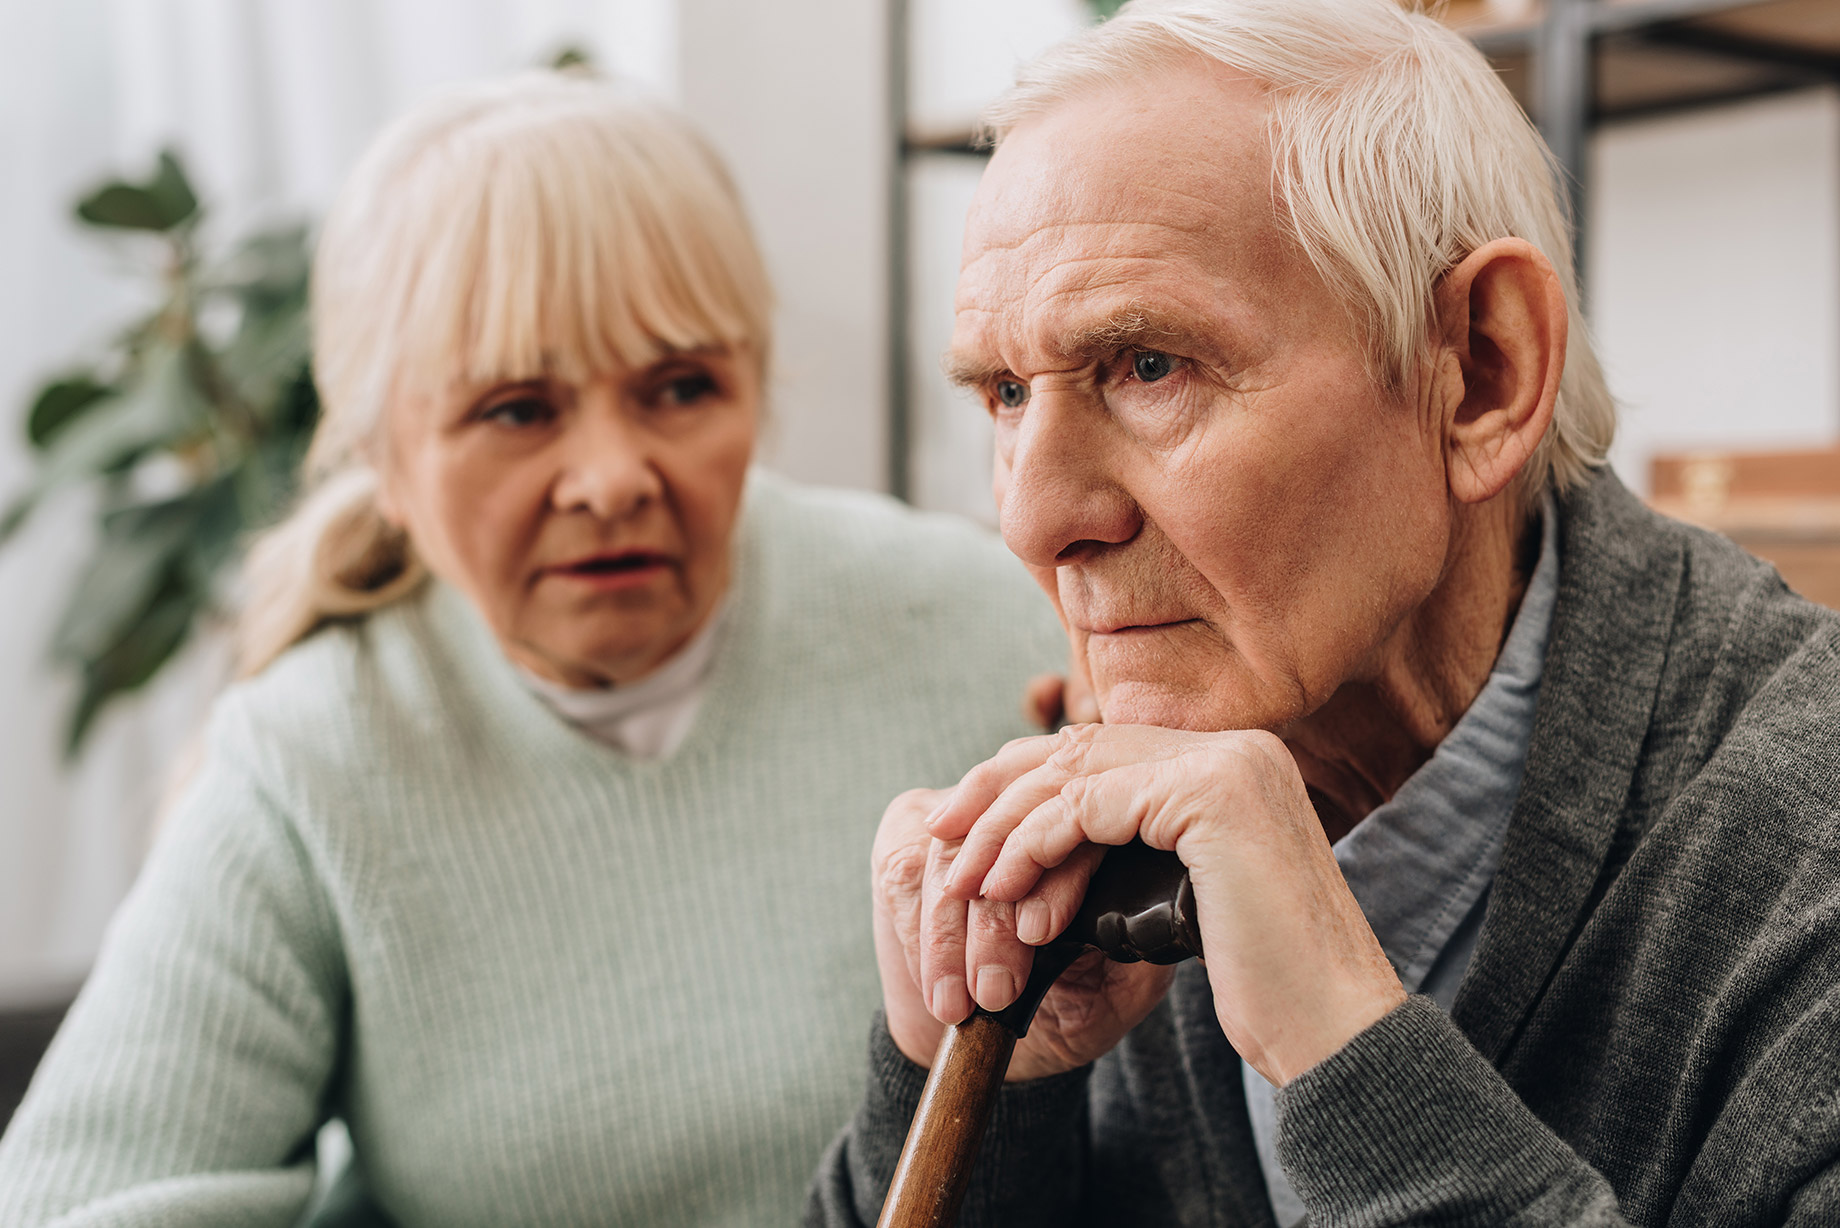 sad pensioner sitting near senior wife at home